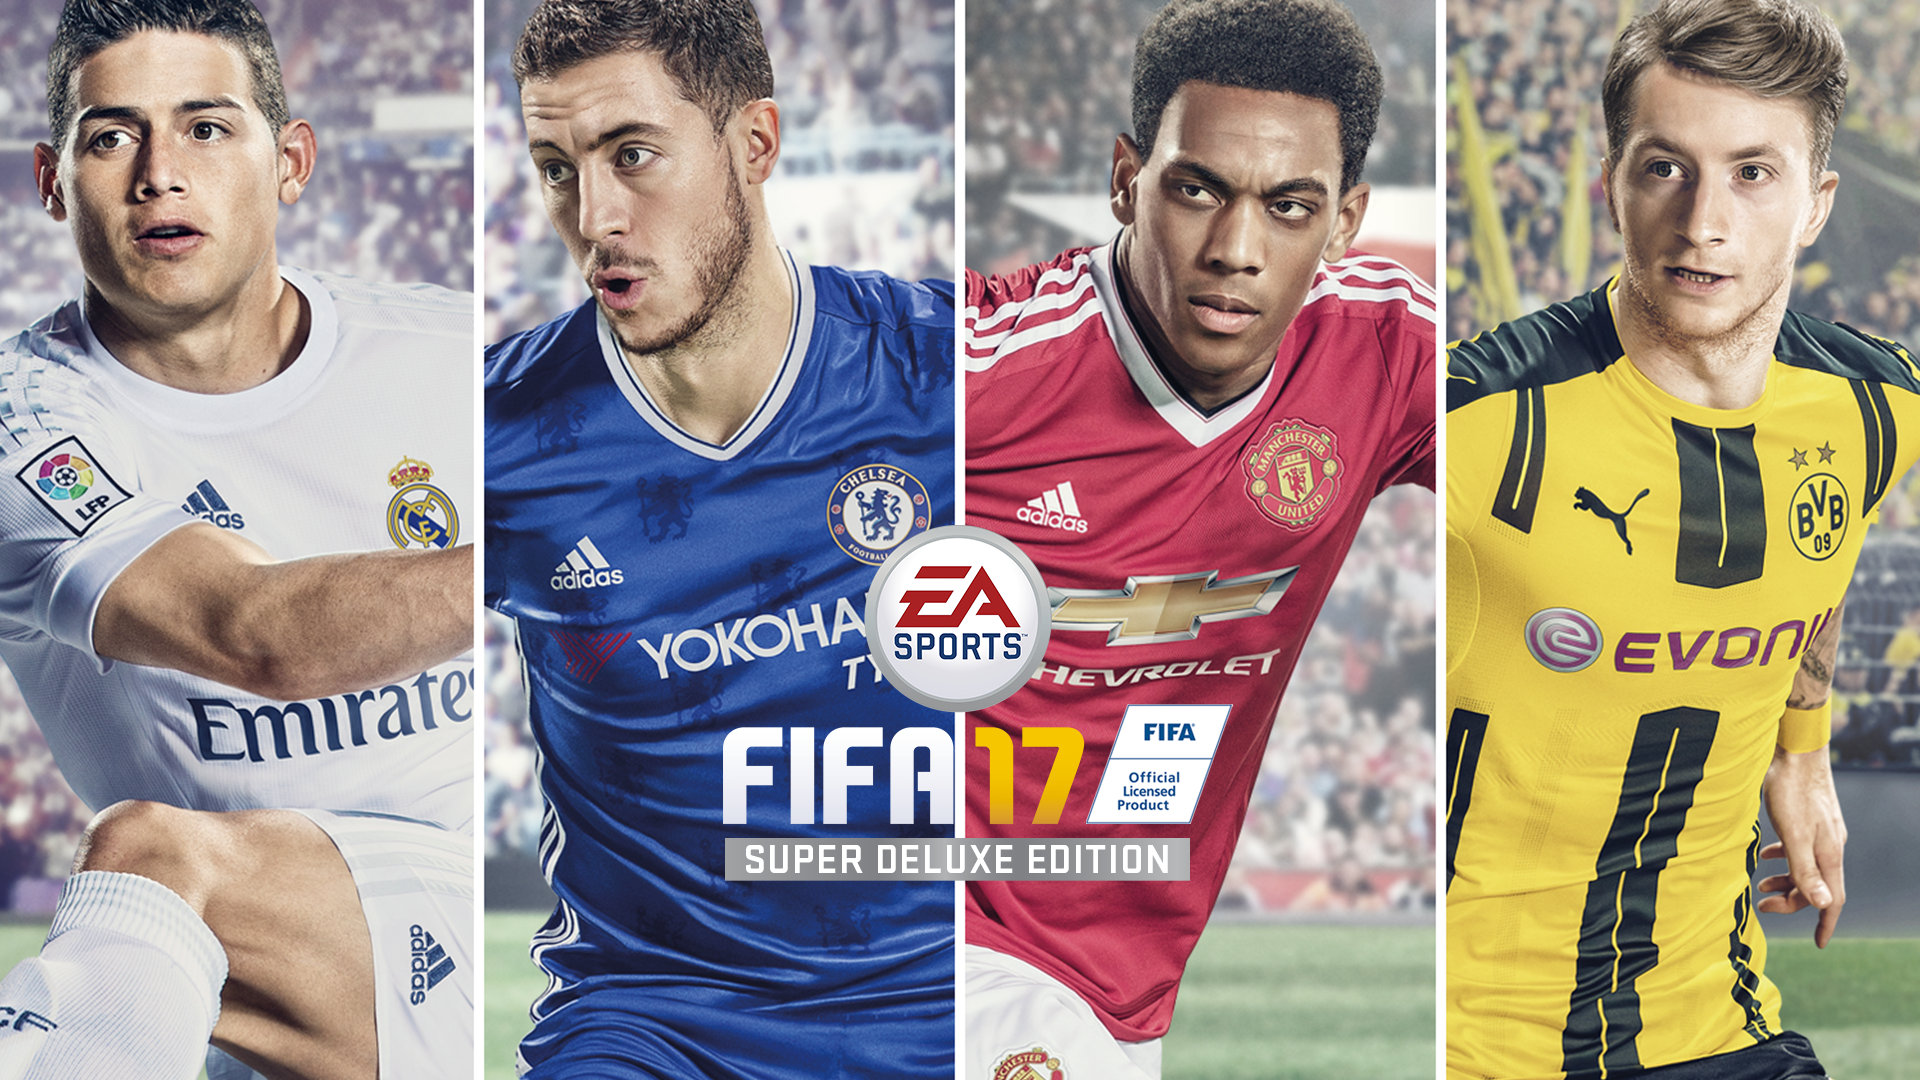 fifa-17-super-deluxe-edition-01-ps4-us-03jun16